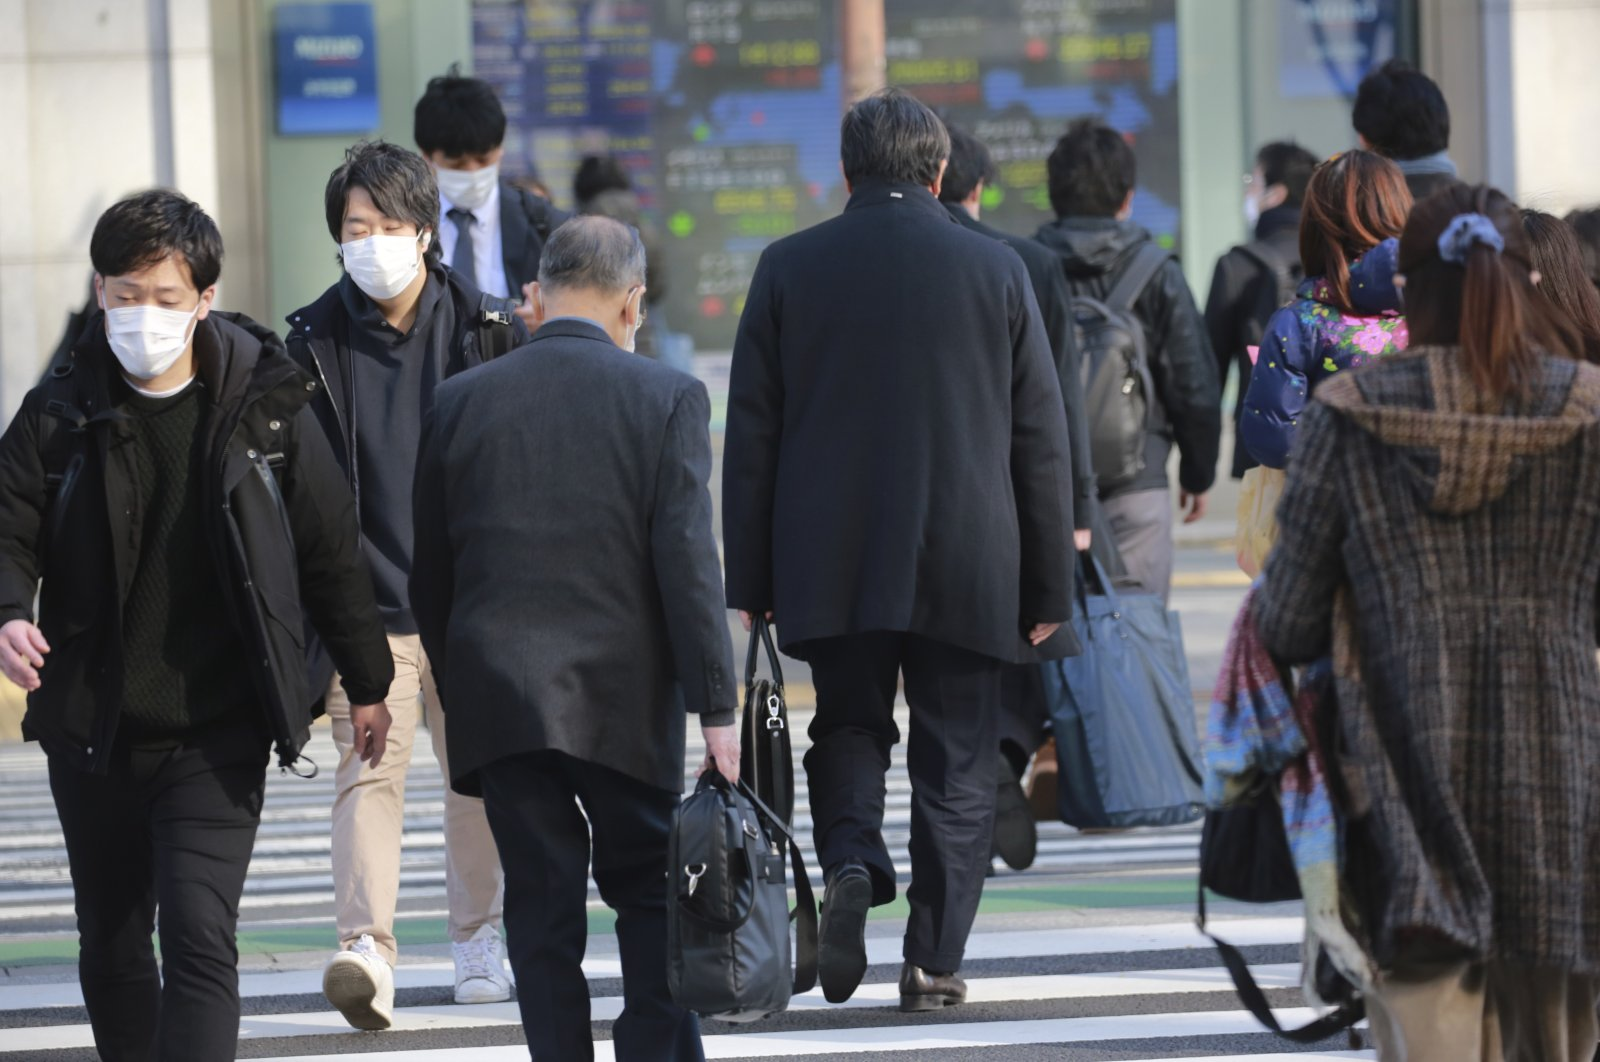 People cross an intersection on a street in Tokyo, Dec. 14, 2020. (AP Photo)